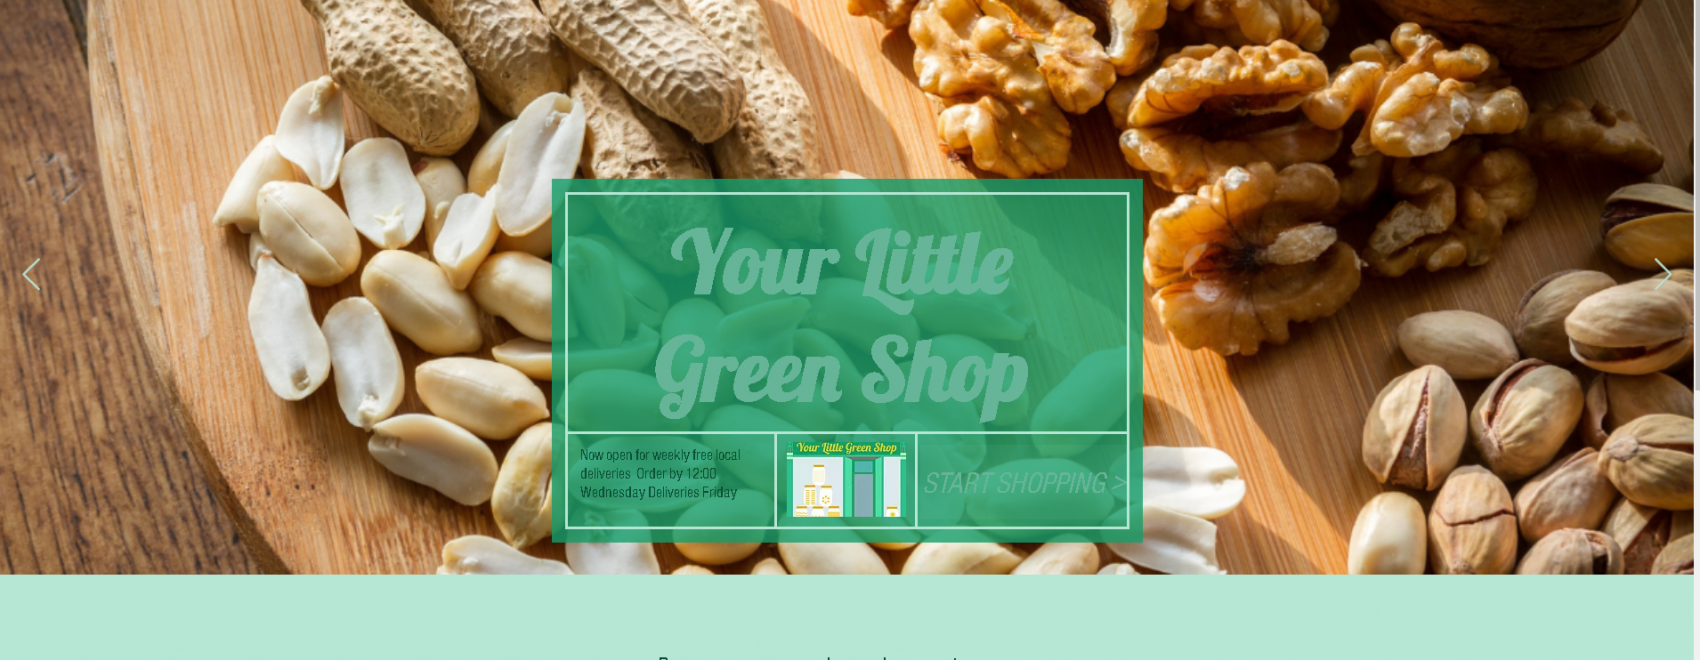 Picture of some nuts on teh front page of Your Little Green Shops website